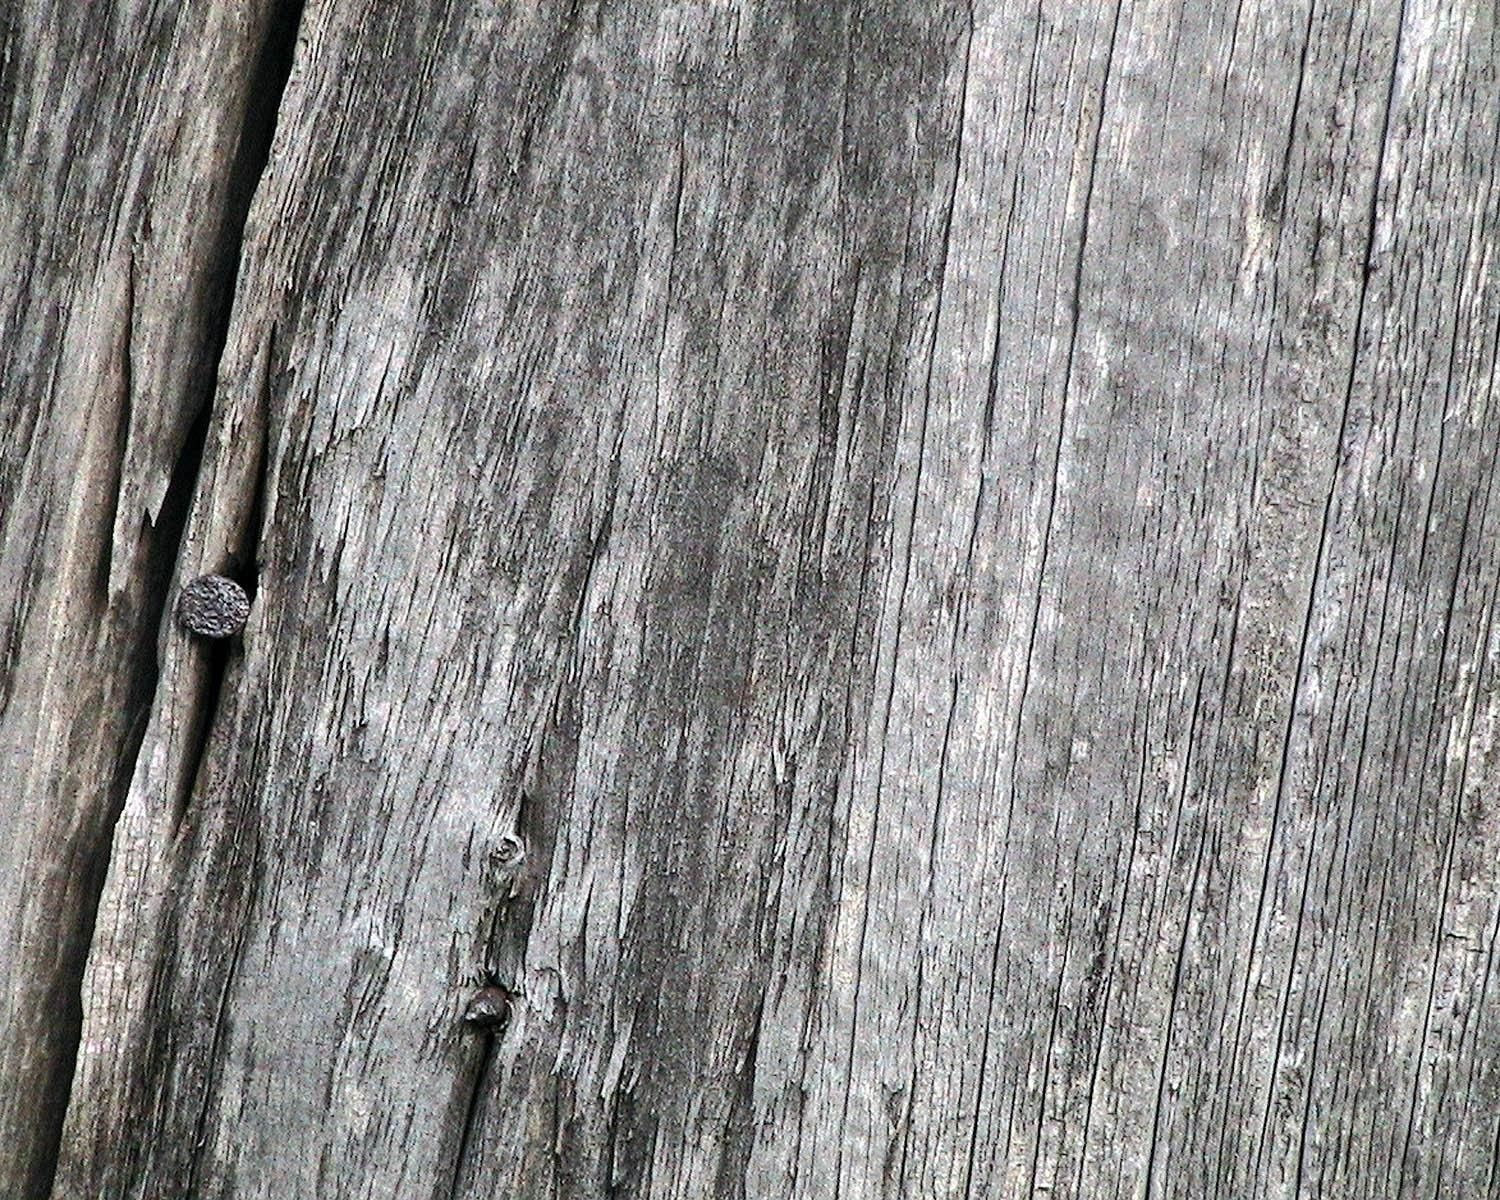 File:Weathered barn wood with nail - Wikimedia Commons